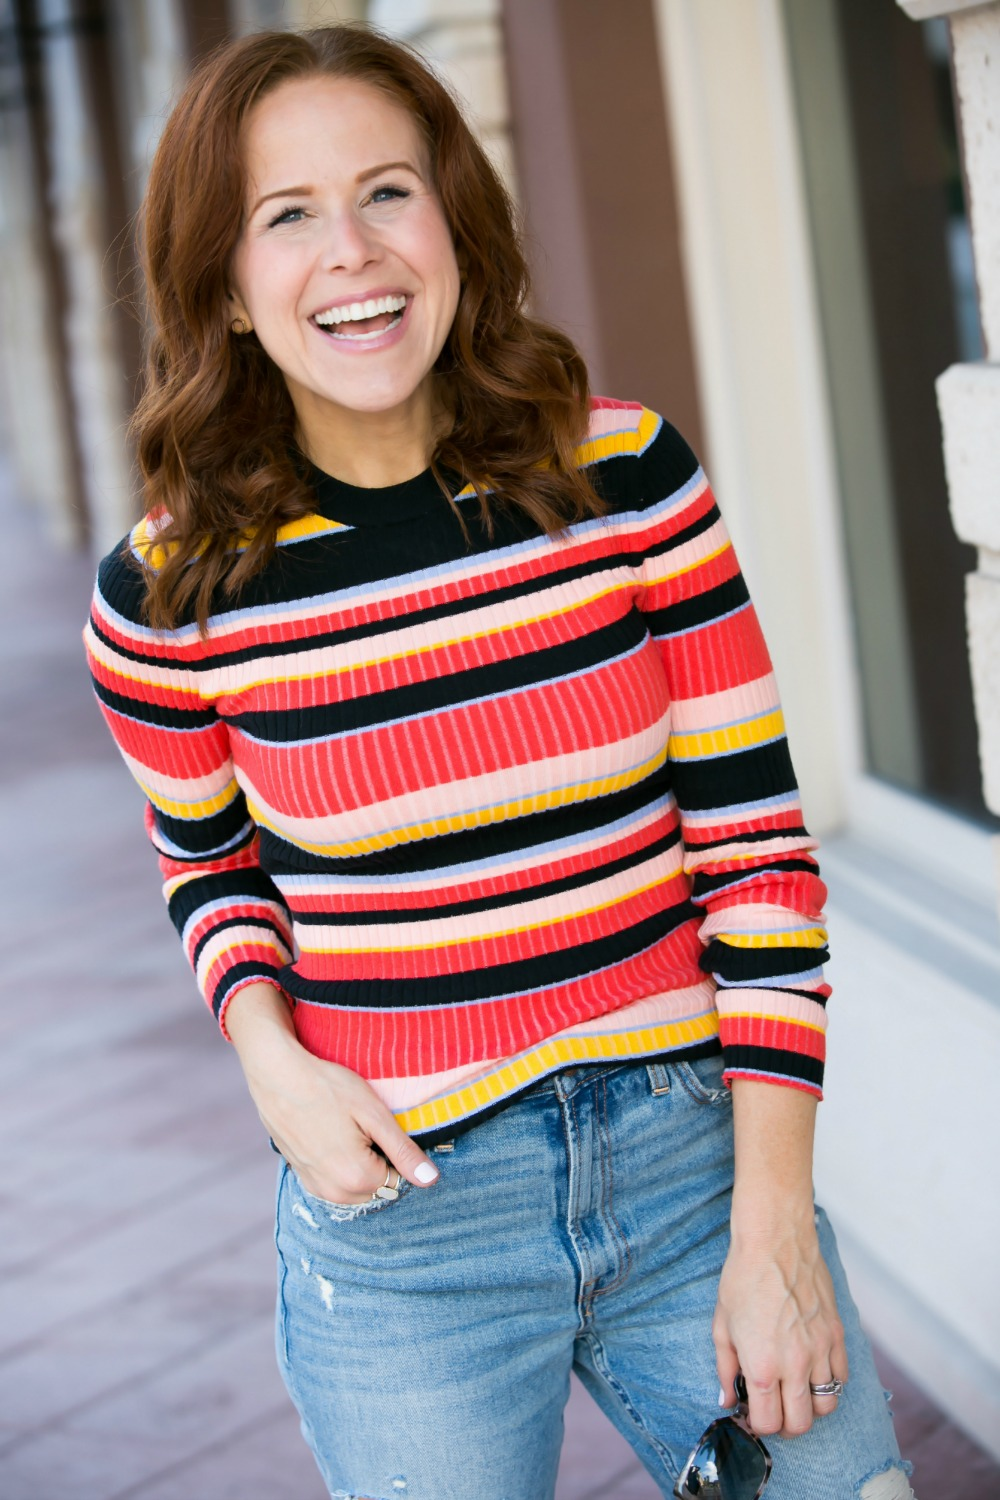 The easiest, and budget friendly outfit to look pulled together FAST // #falloutfit #momstyle #momuniform #rainbow | 90s Vibes | Target | Fall weekend uniform | The Striped Ribbed Sweater is Back featured by top Florida fashion blog the modern savvy